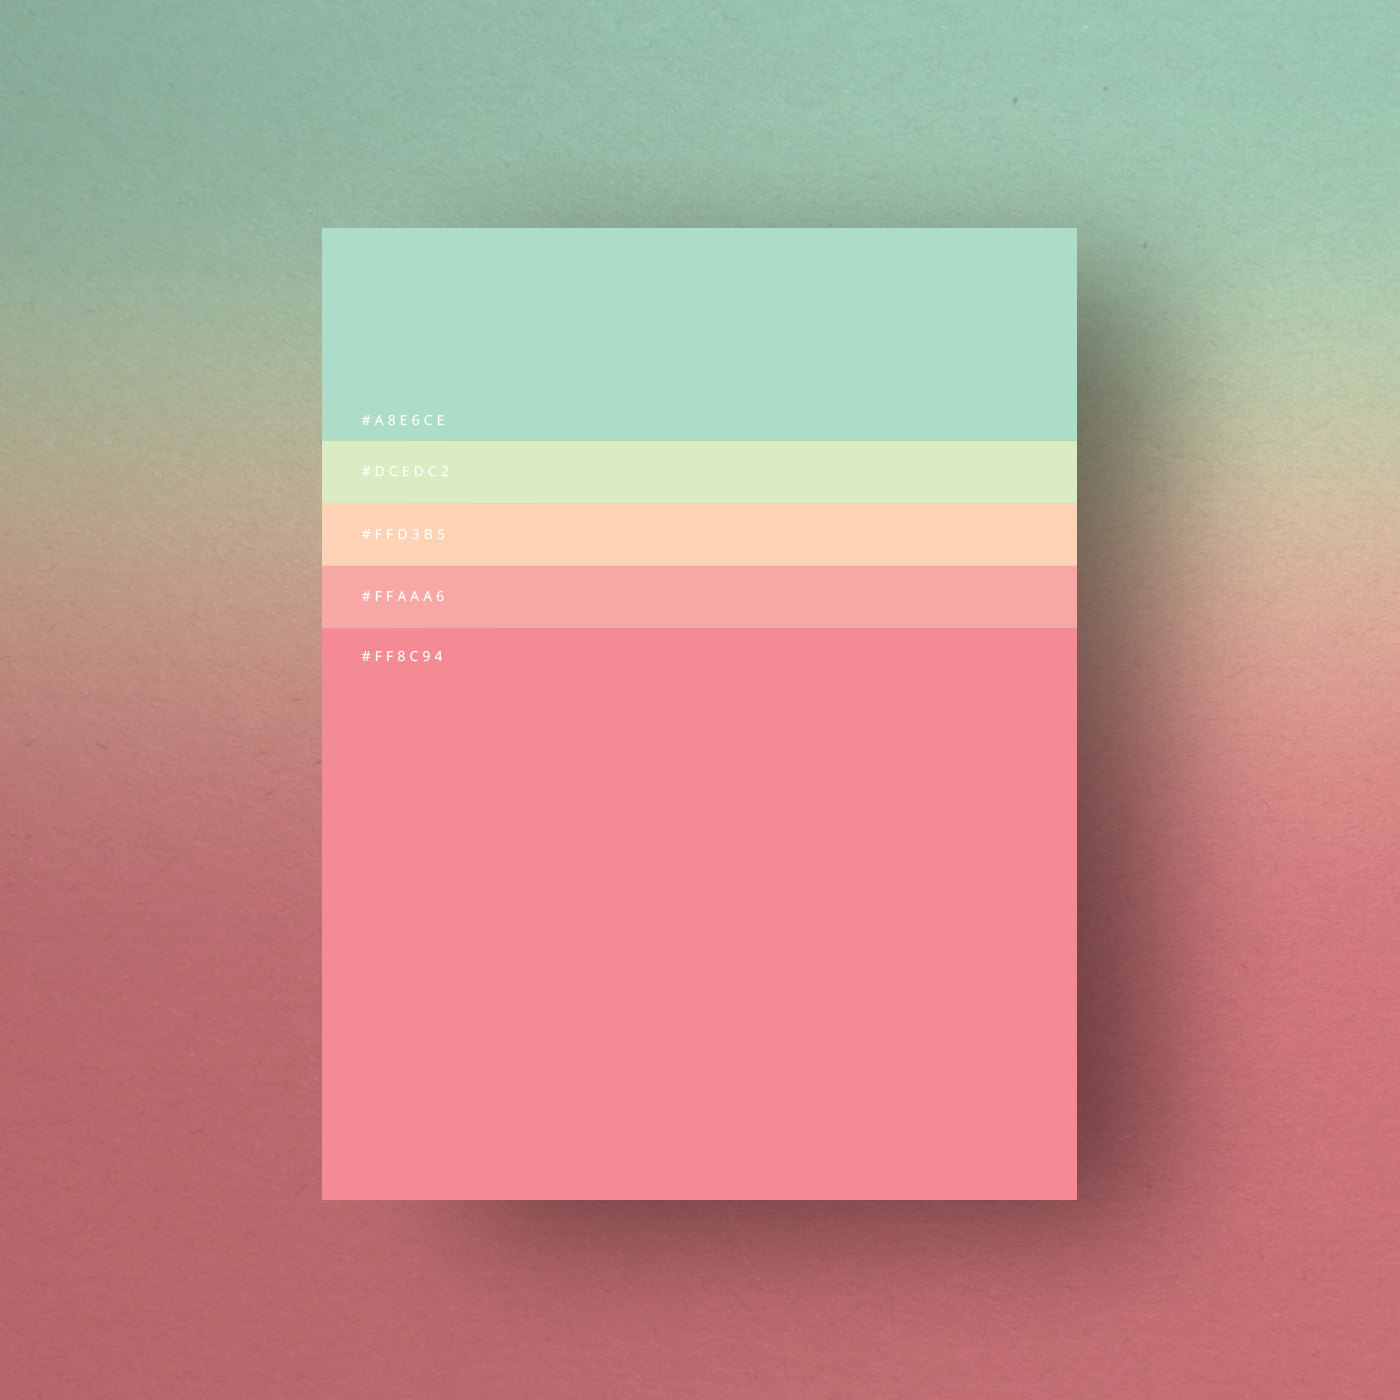 Minimalist Color Palette Poster Design